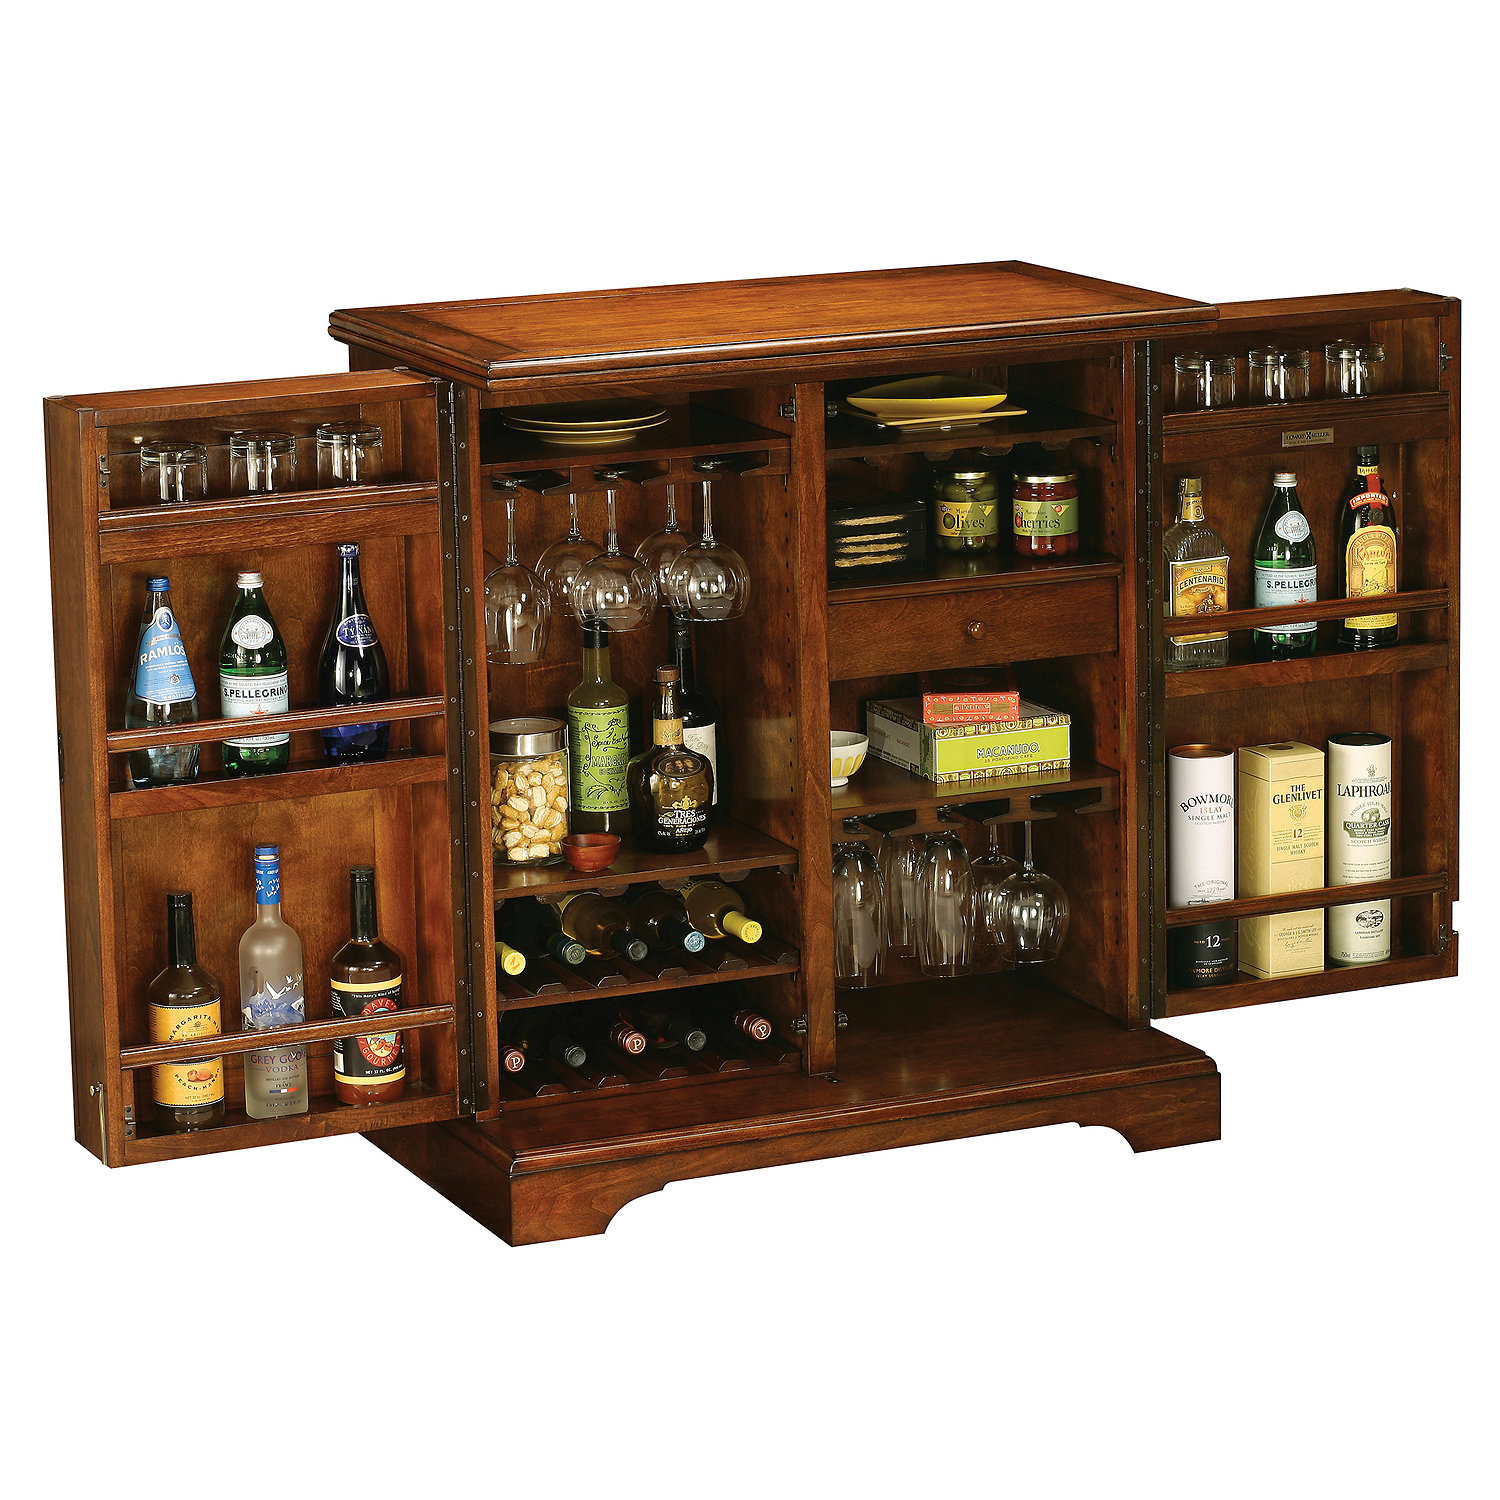 Best Home Bar Cabinet Plans Caropinto